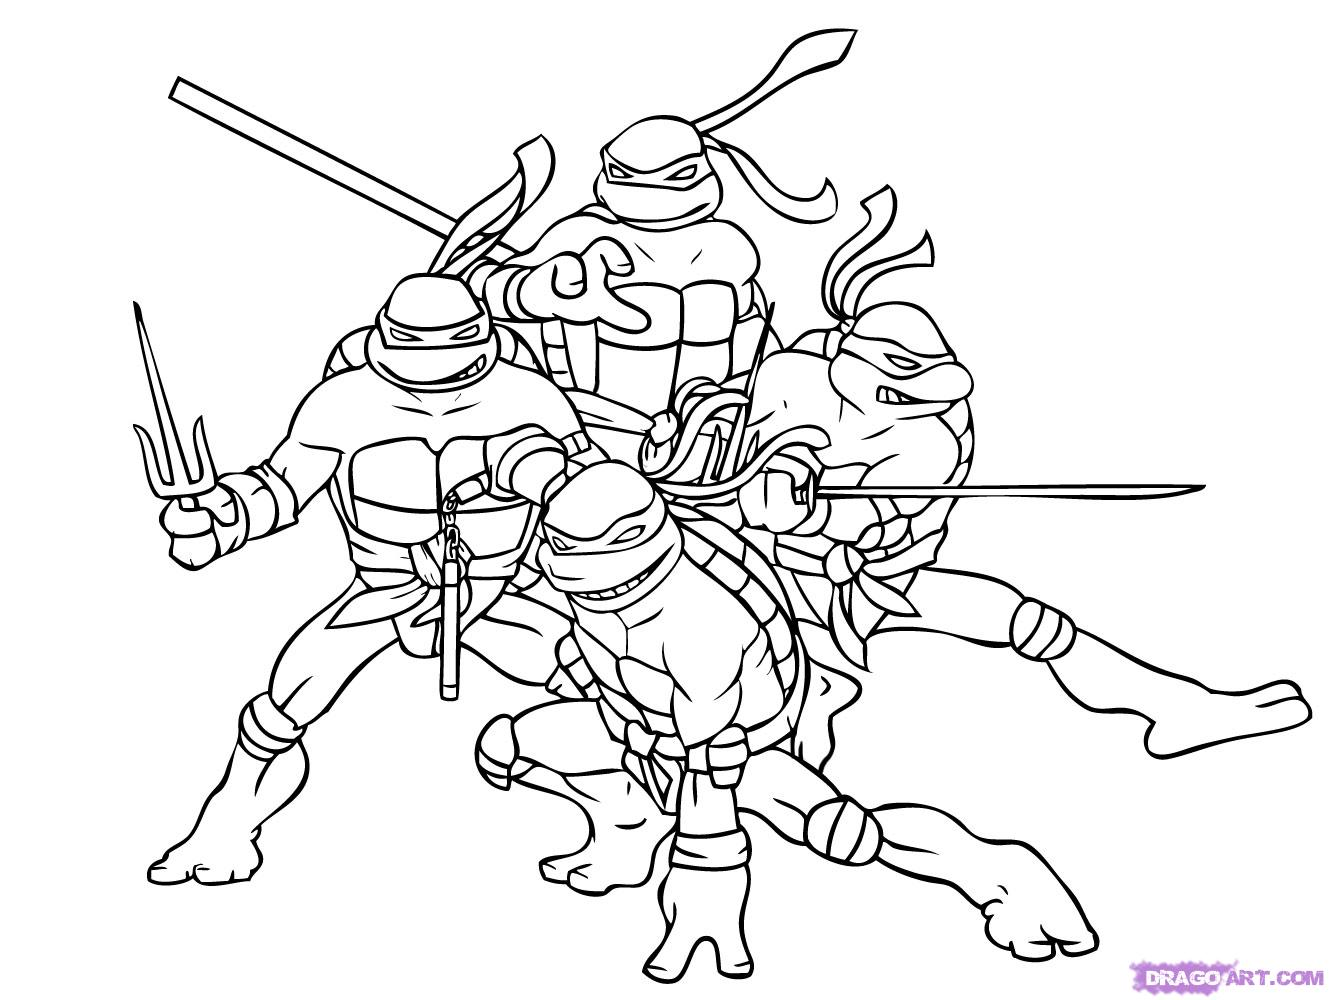 printable coloring pages ninja turtles - photo#1